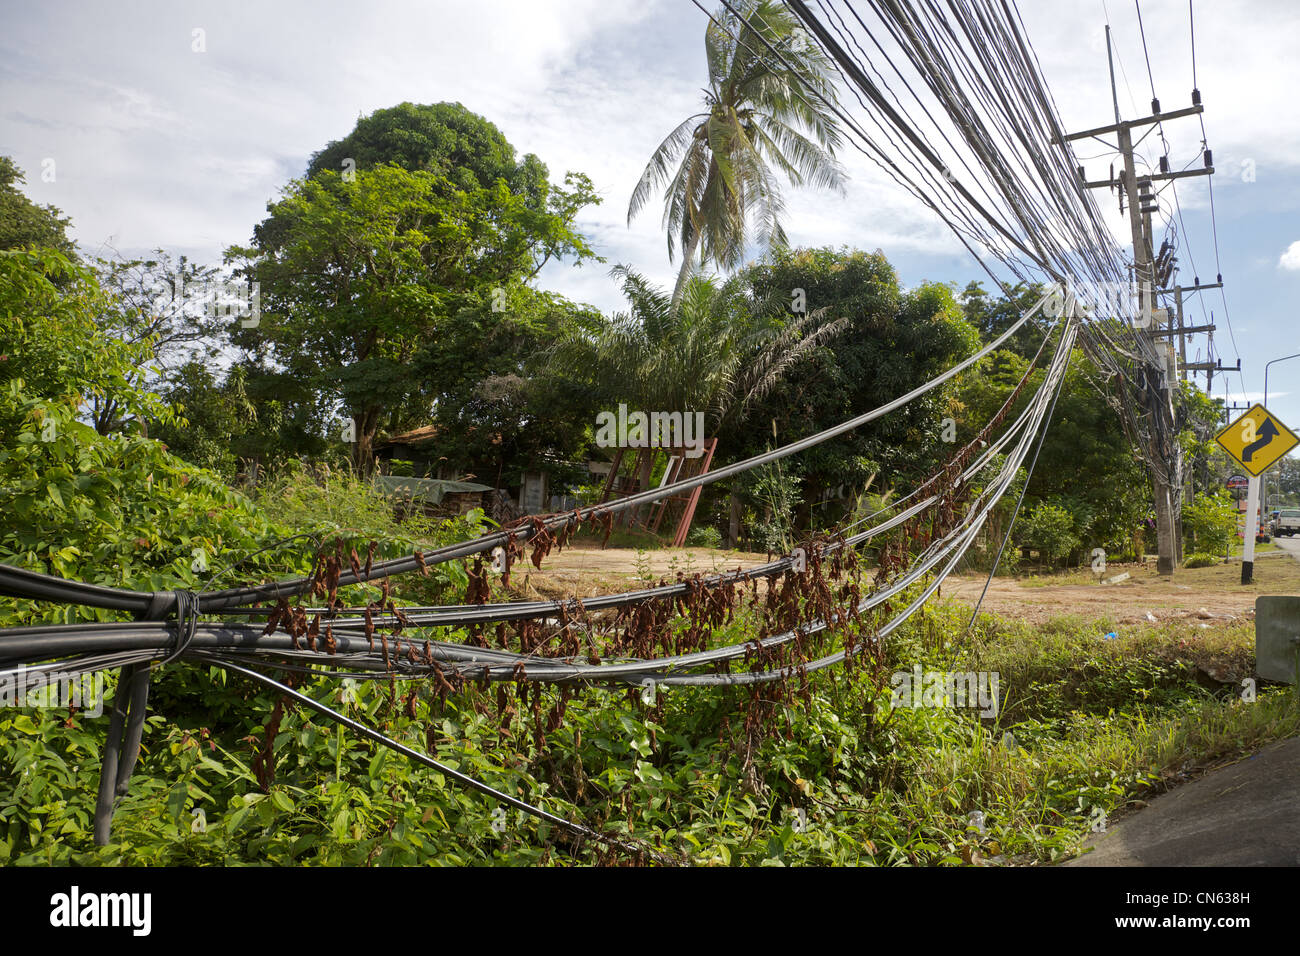 Telephone cable nightmare in Thailand - Stock Image